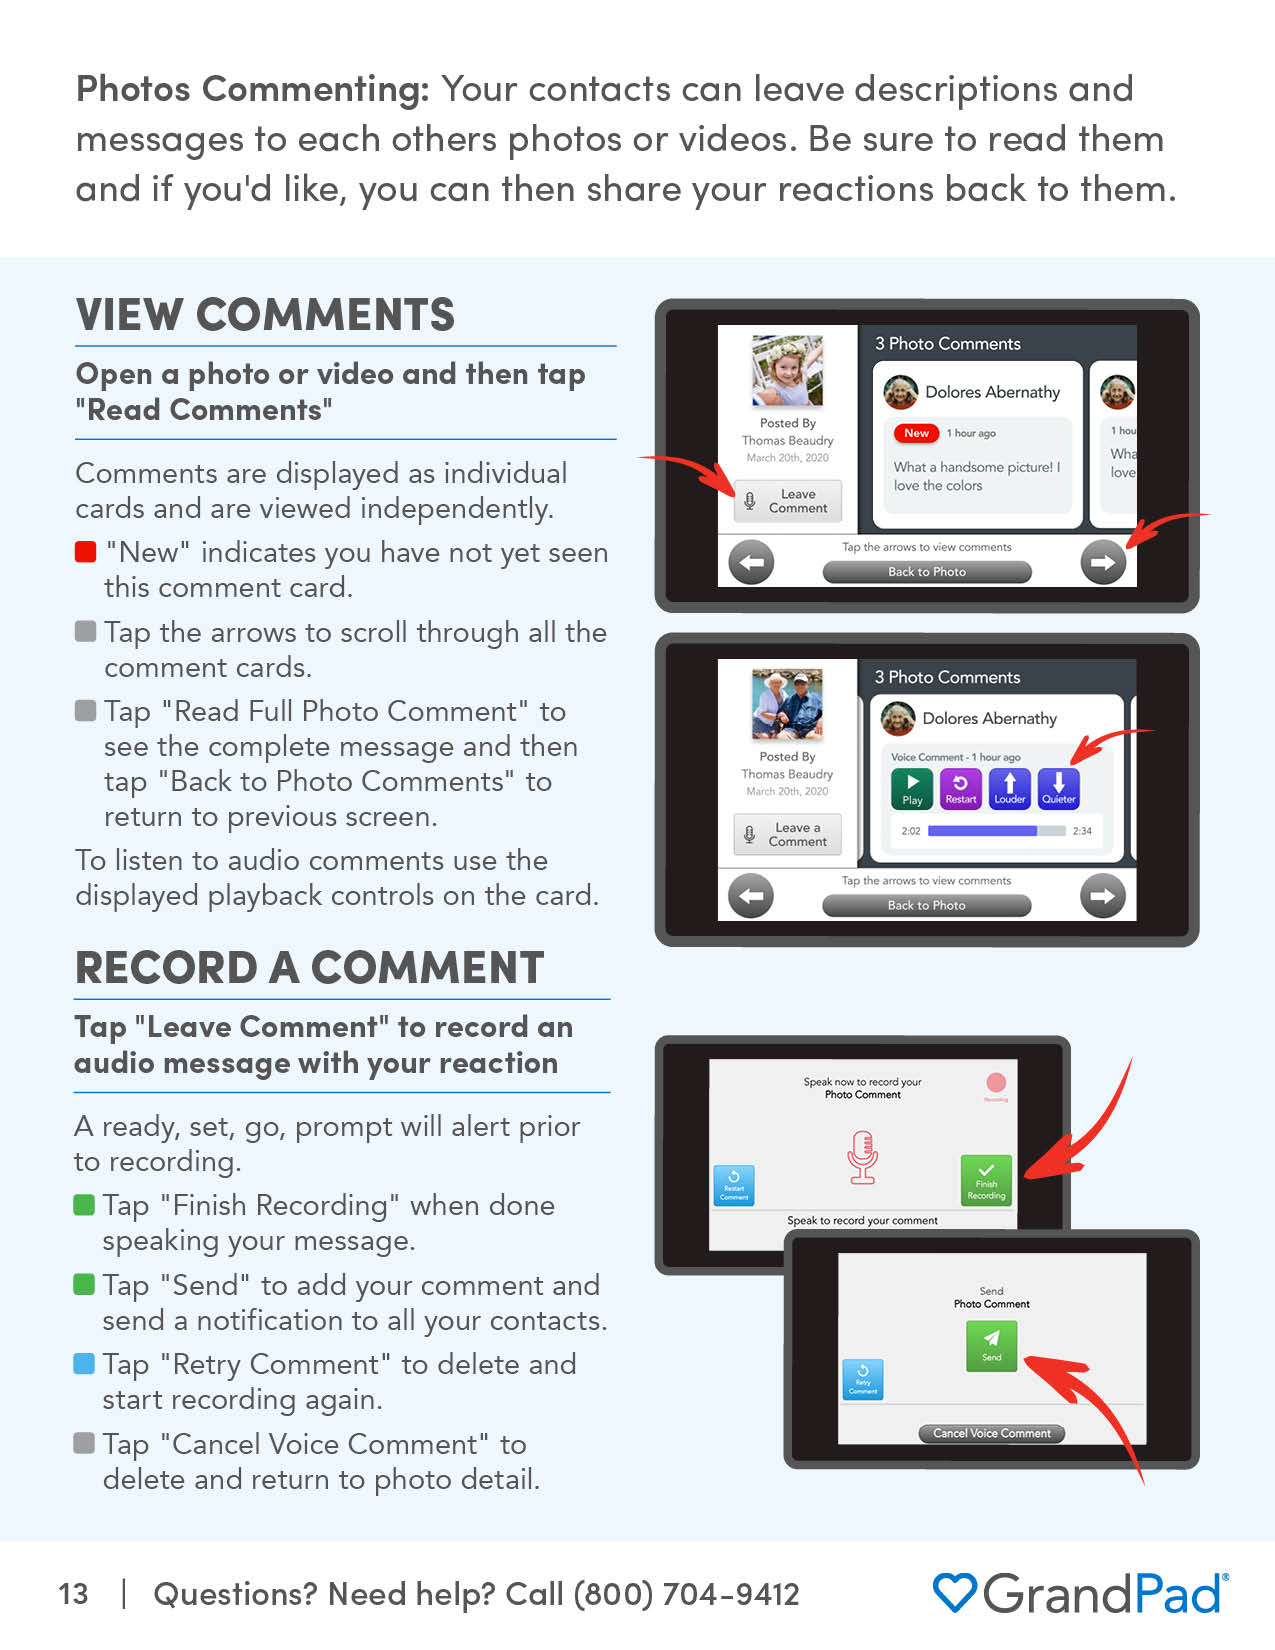 Instruction on viewing comments on a photo or video